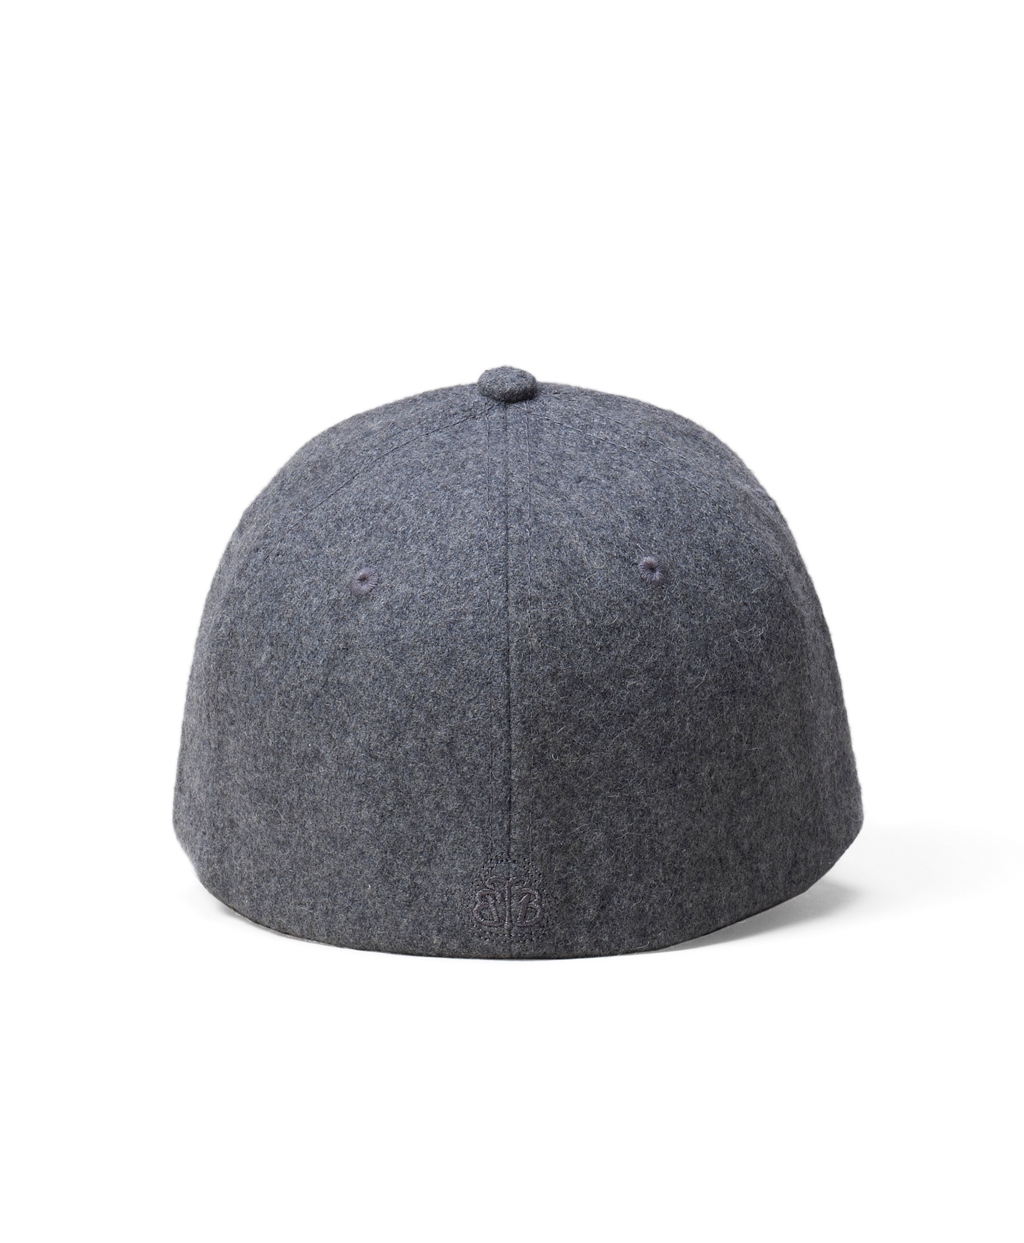 ff39ae2df681f Brooks Brothers Wool Baseball Hat in Gray for Men - Lyst